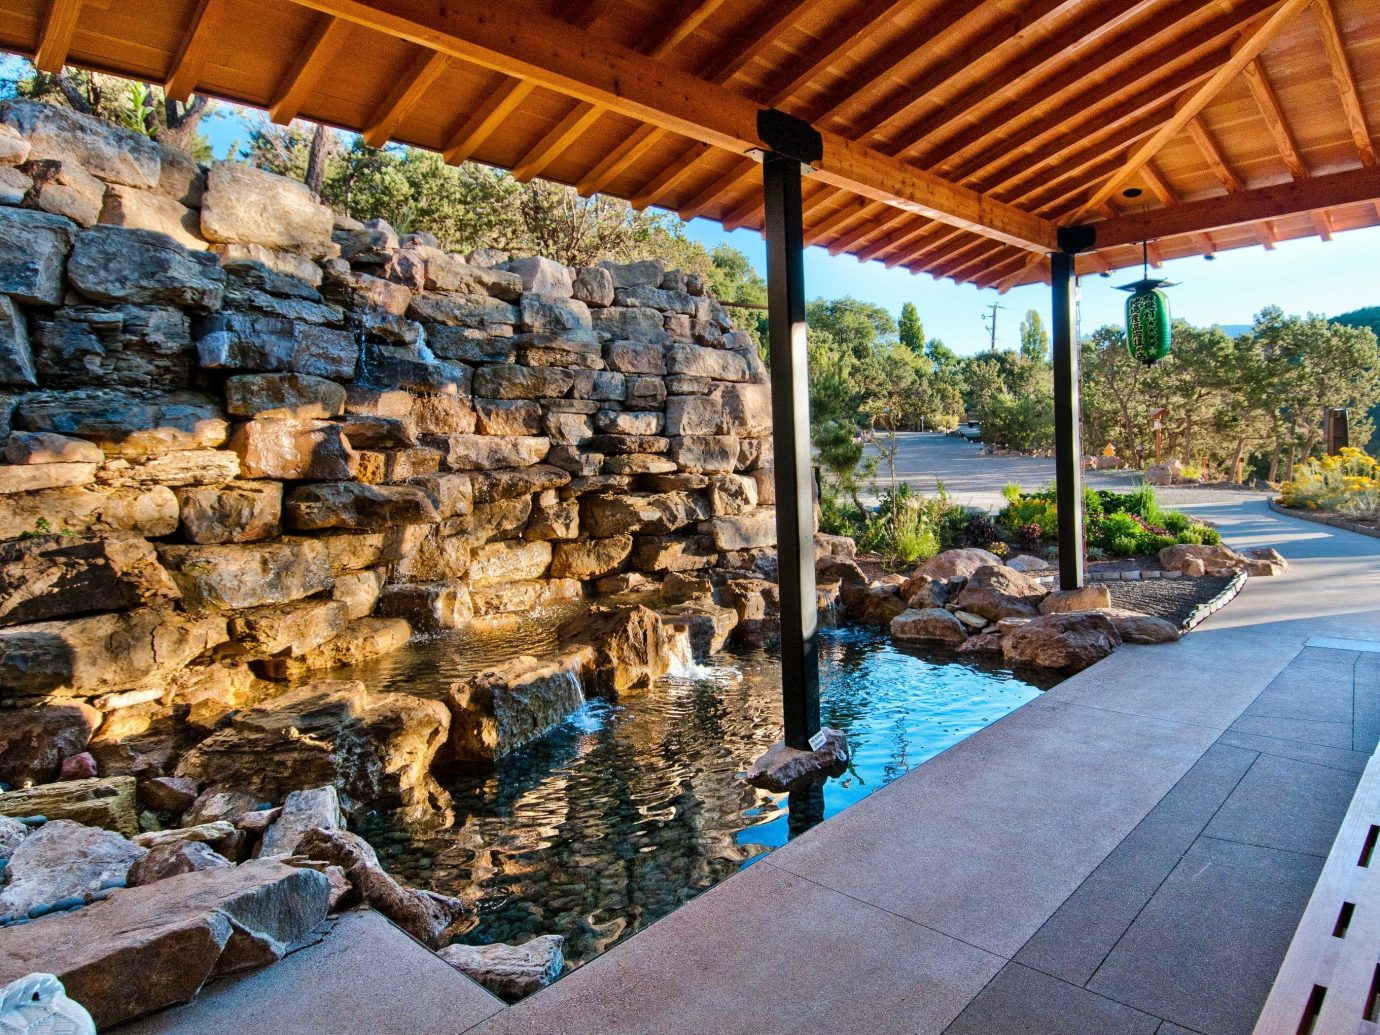 water landscape outdoor structure real estate backyard swimming pool landscaping Patio water feature rock